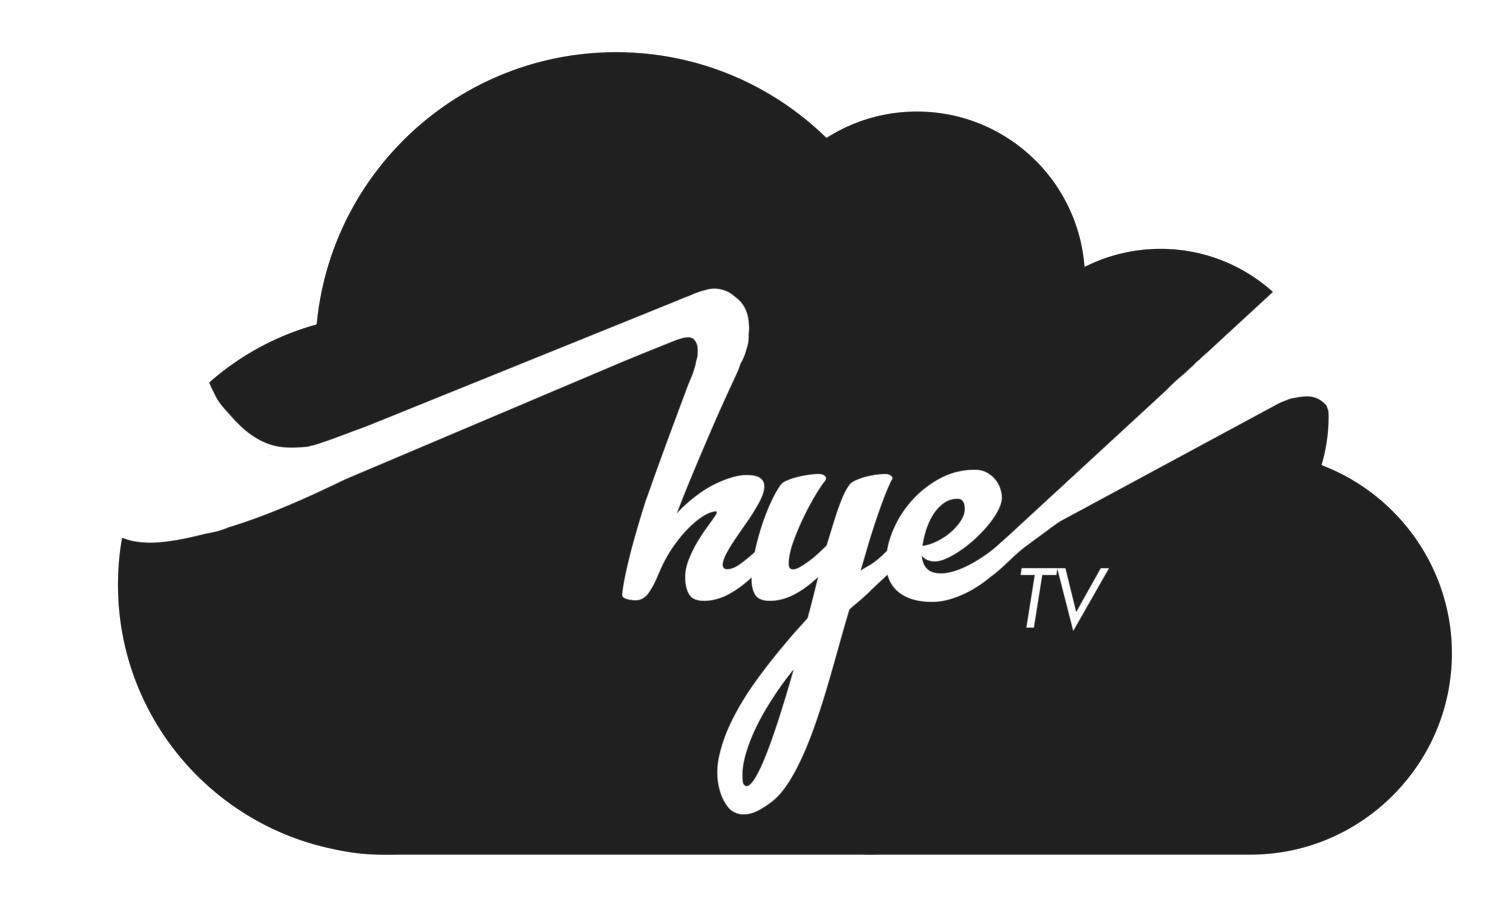 The HYE TV